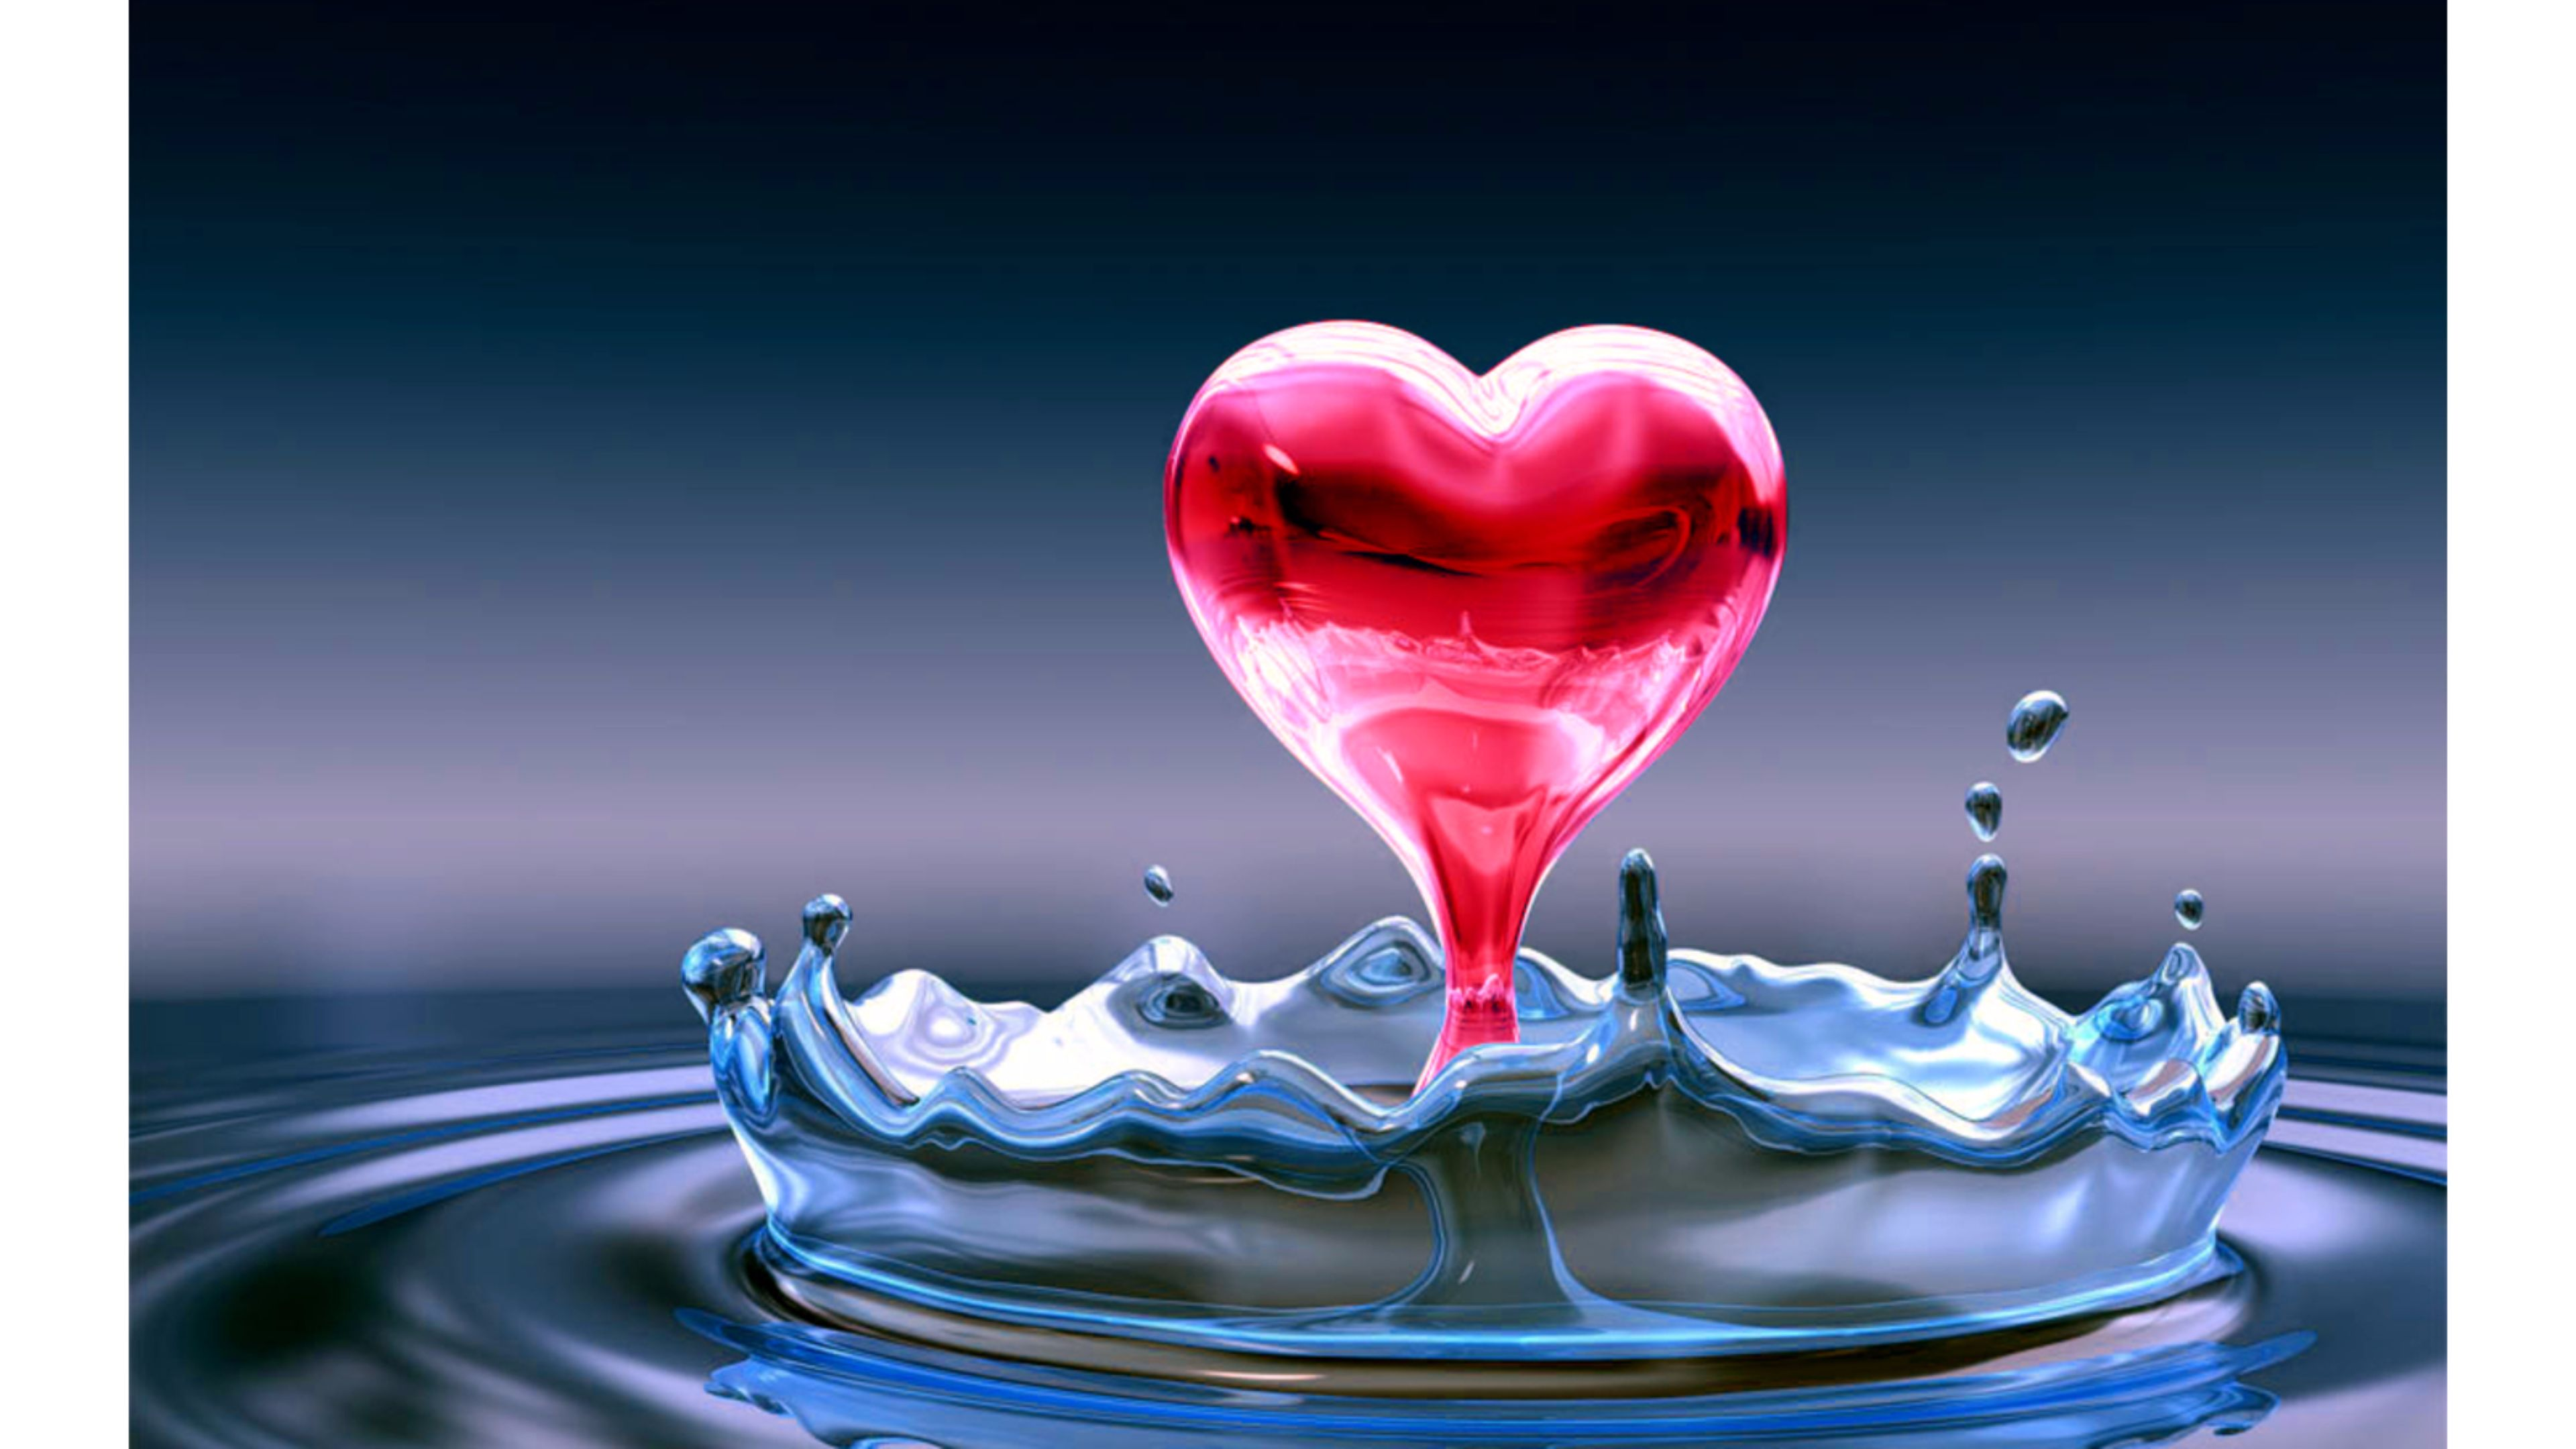 Cute Red Hearts Wallpapers Heart Wallpapers Photos And Desktop Backgrounds Up To 8k